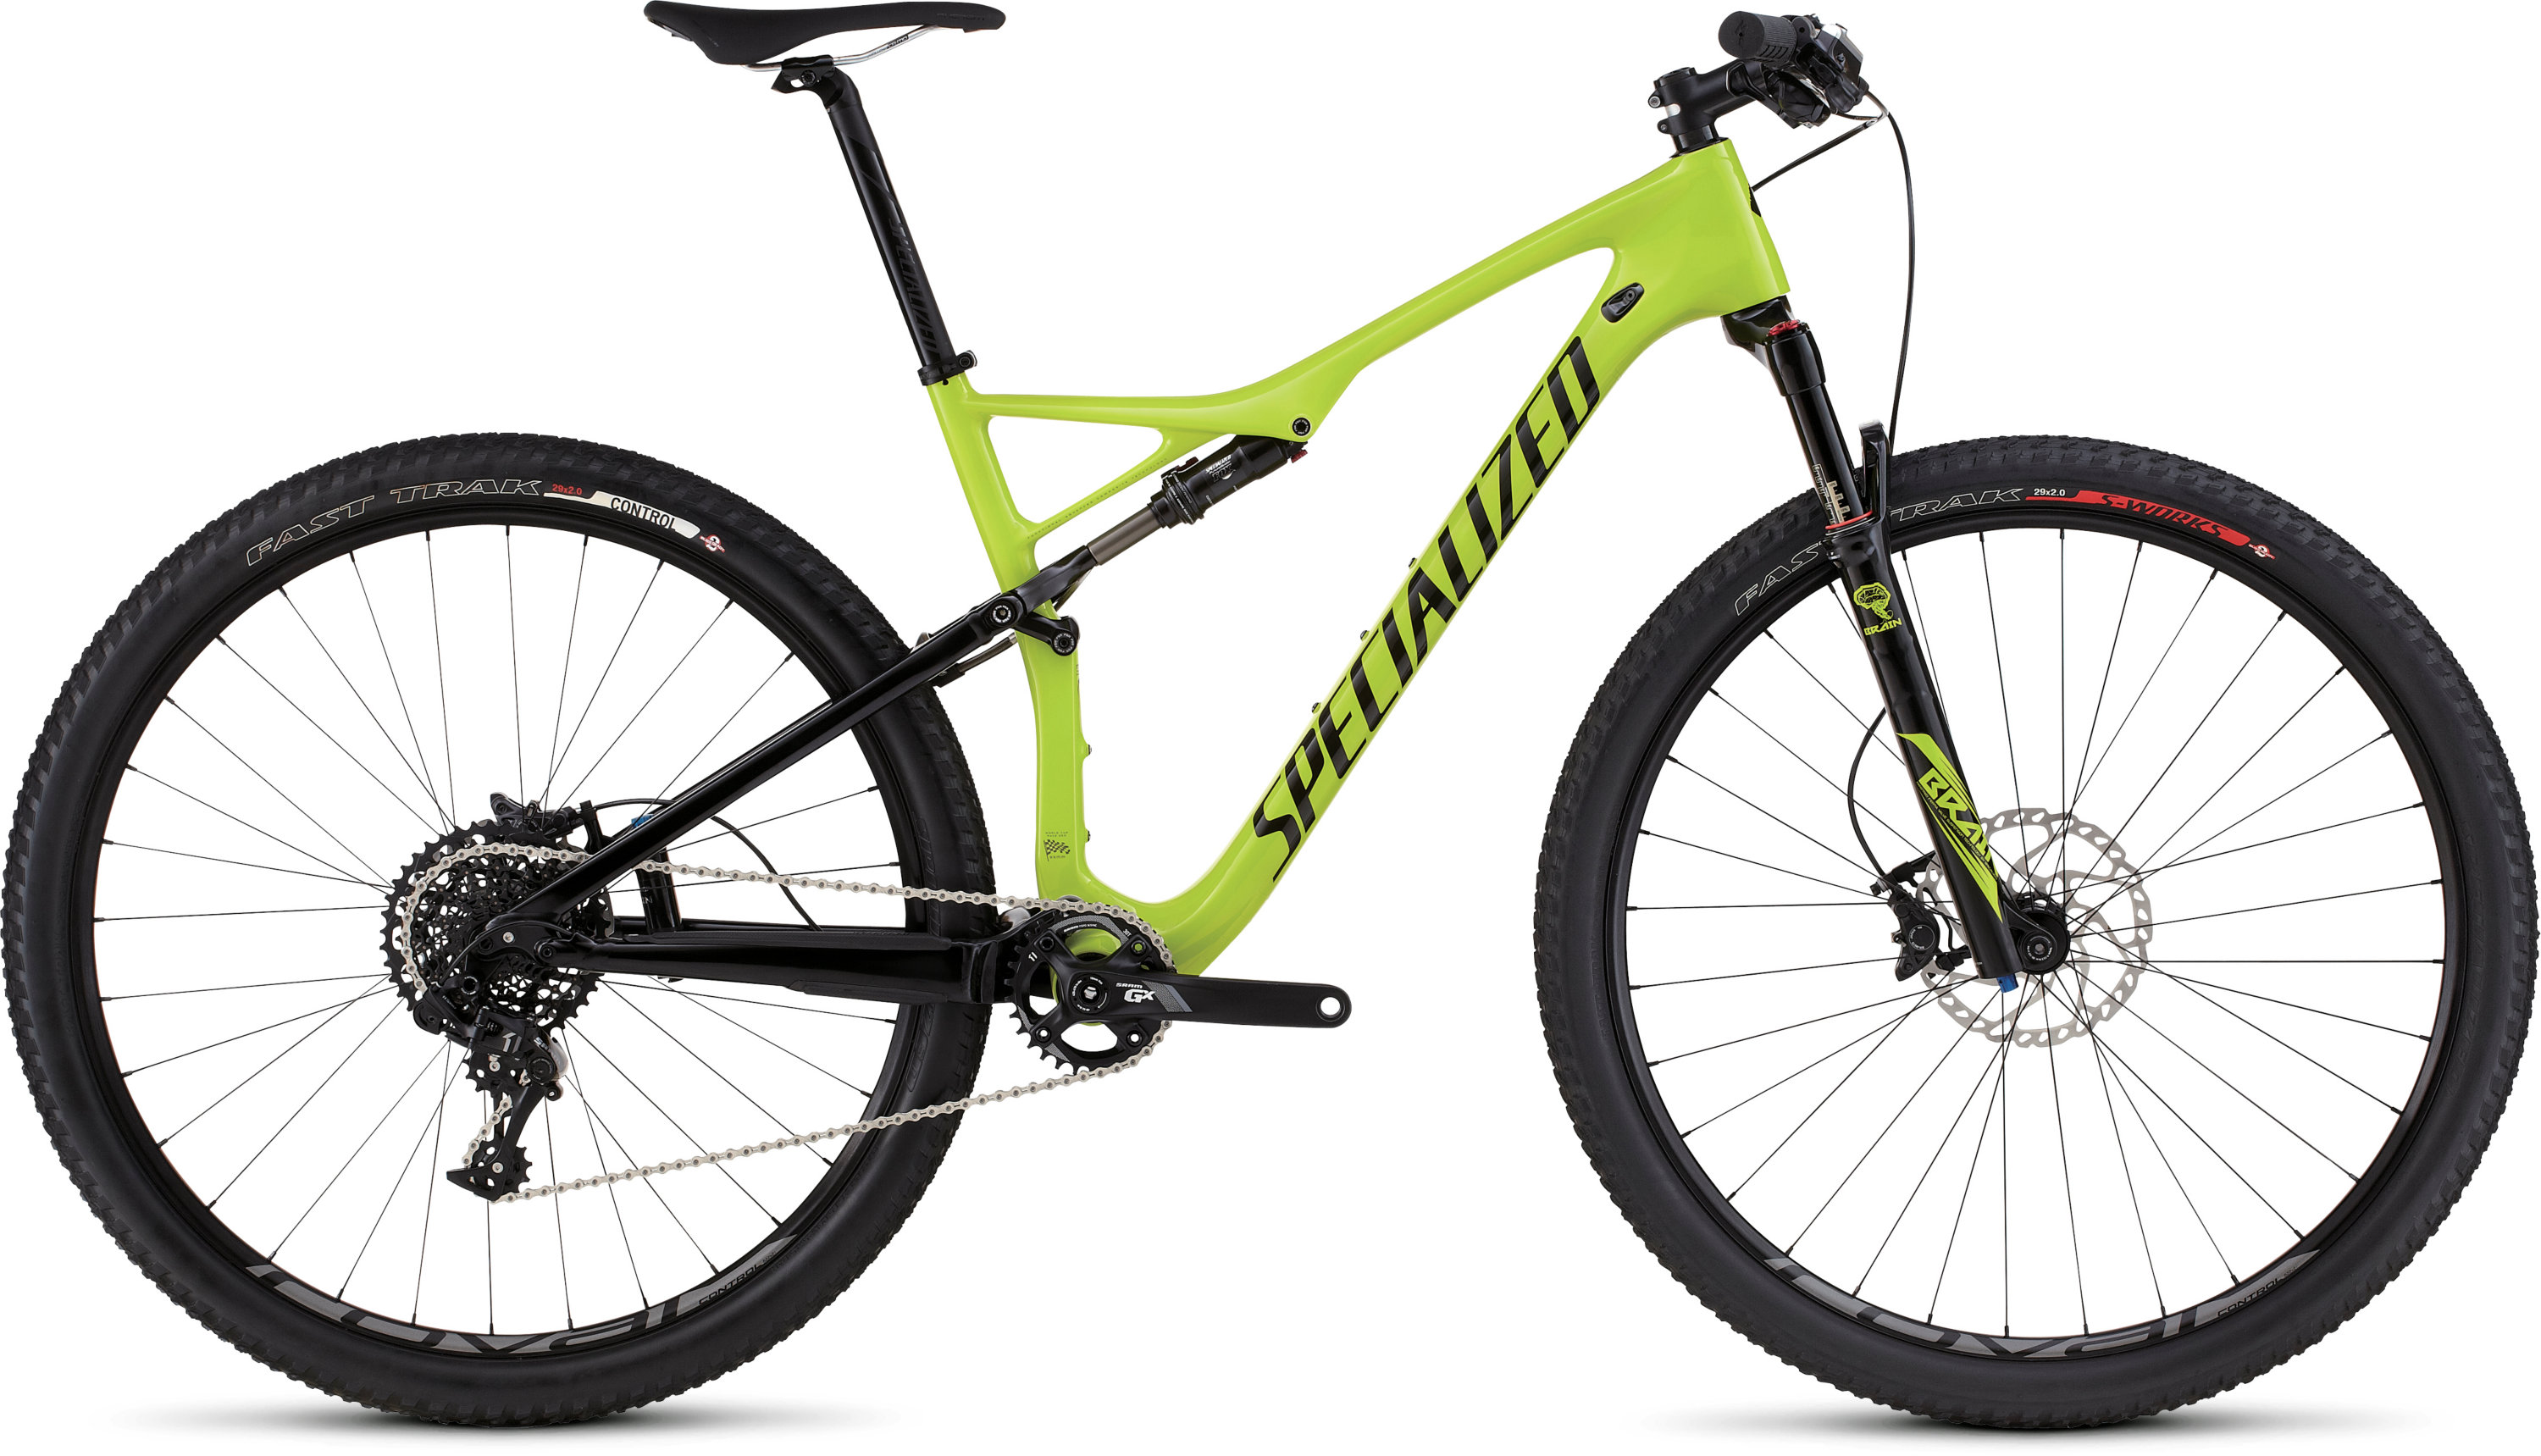 SPECIALIZED EPIC FSR ELITE CARBON WC 29 HYP/BLK S - Bikedreams & Dustbikes